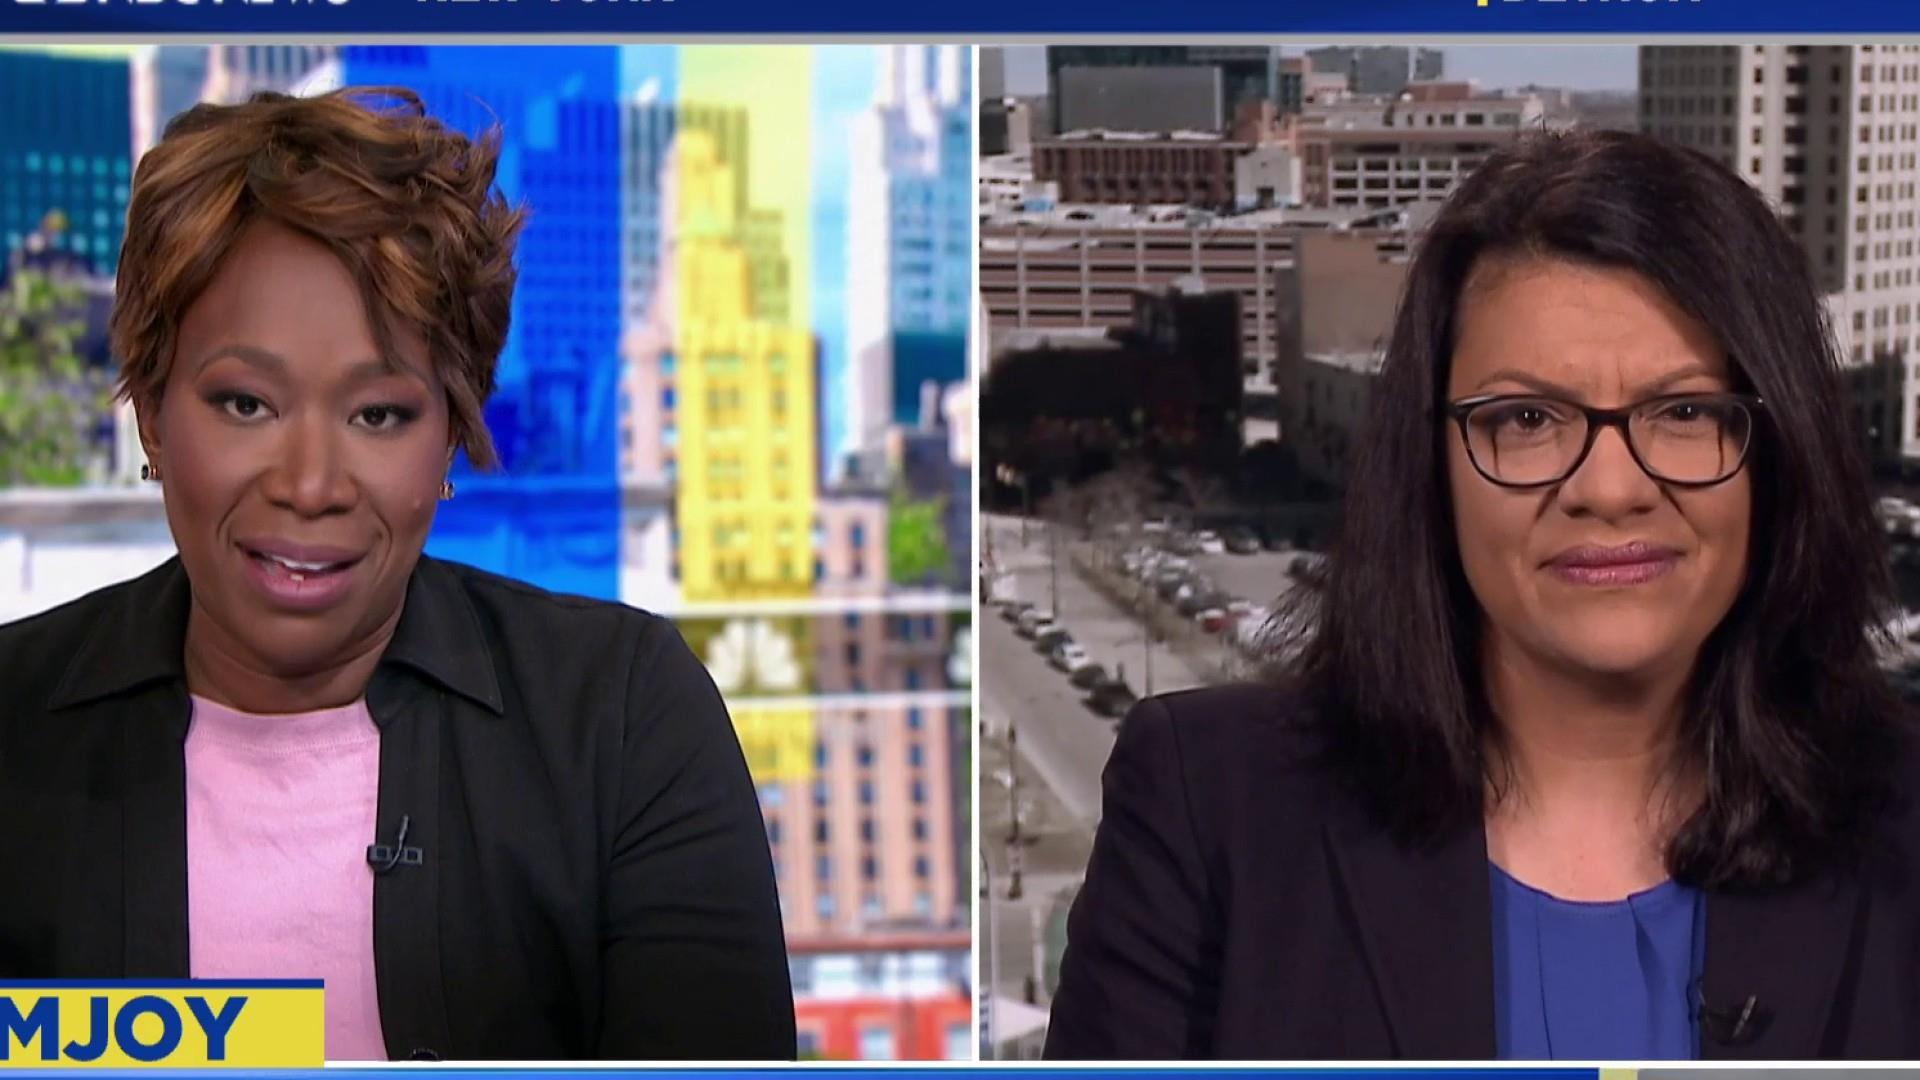 Tlaib wants us to see 'light' in her and Ilhan Omar's election